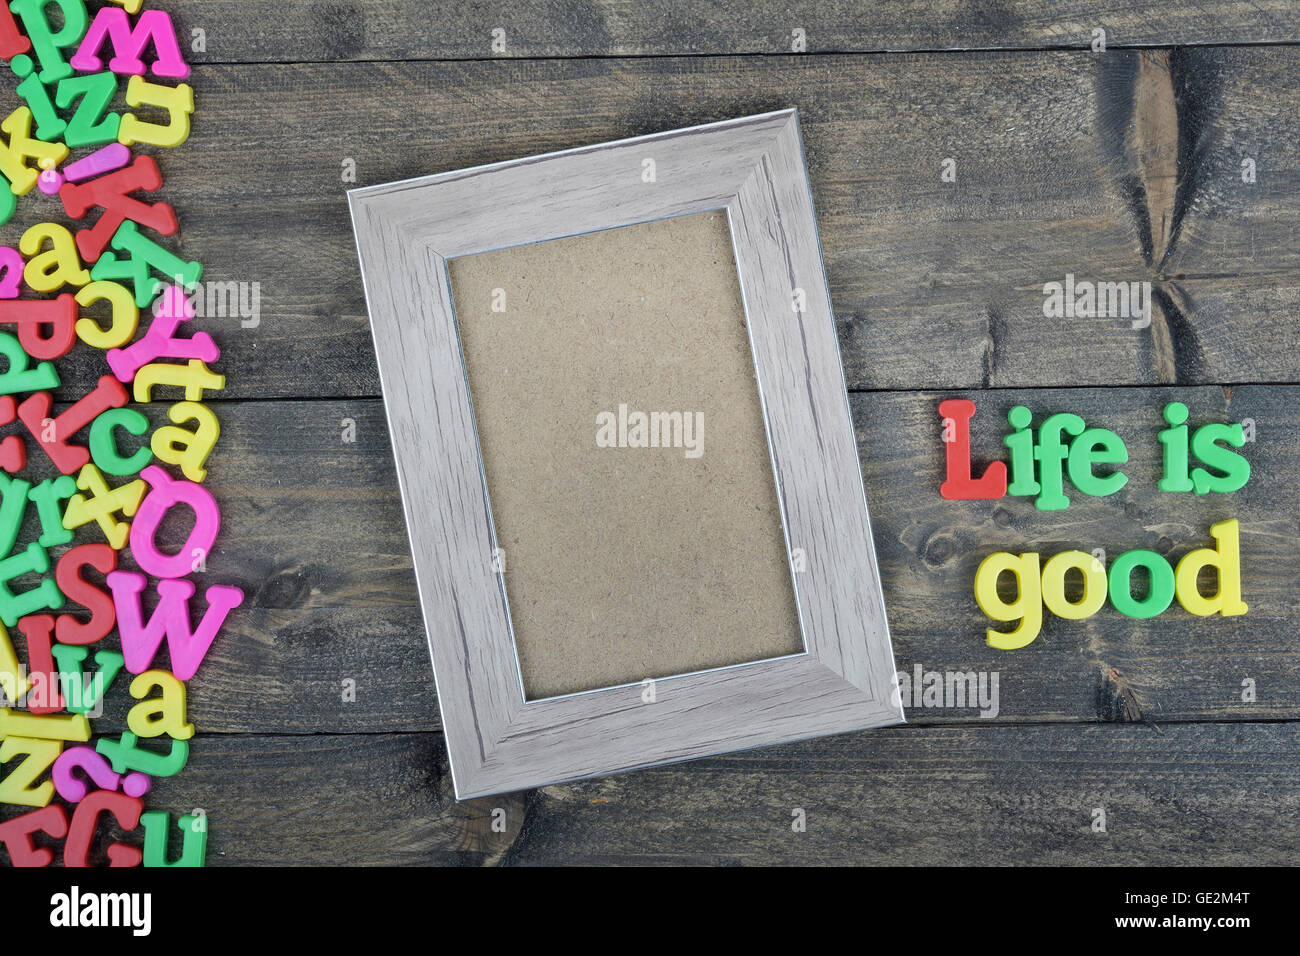 Life Is Good Word On Wooden Table Stock Photo 111927112 Alamy